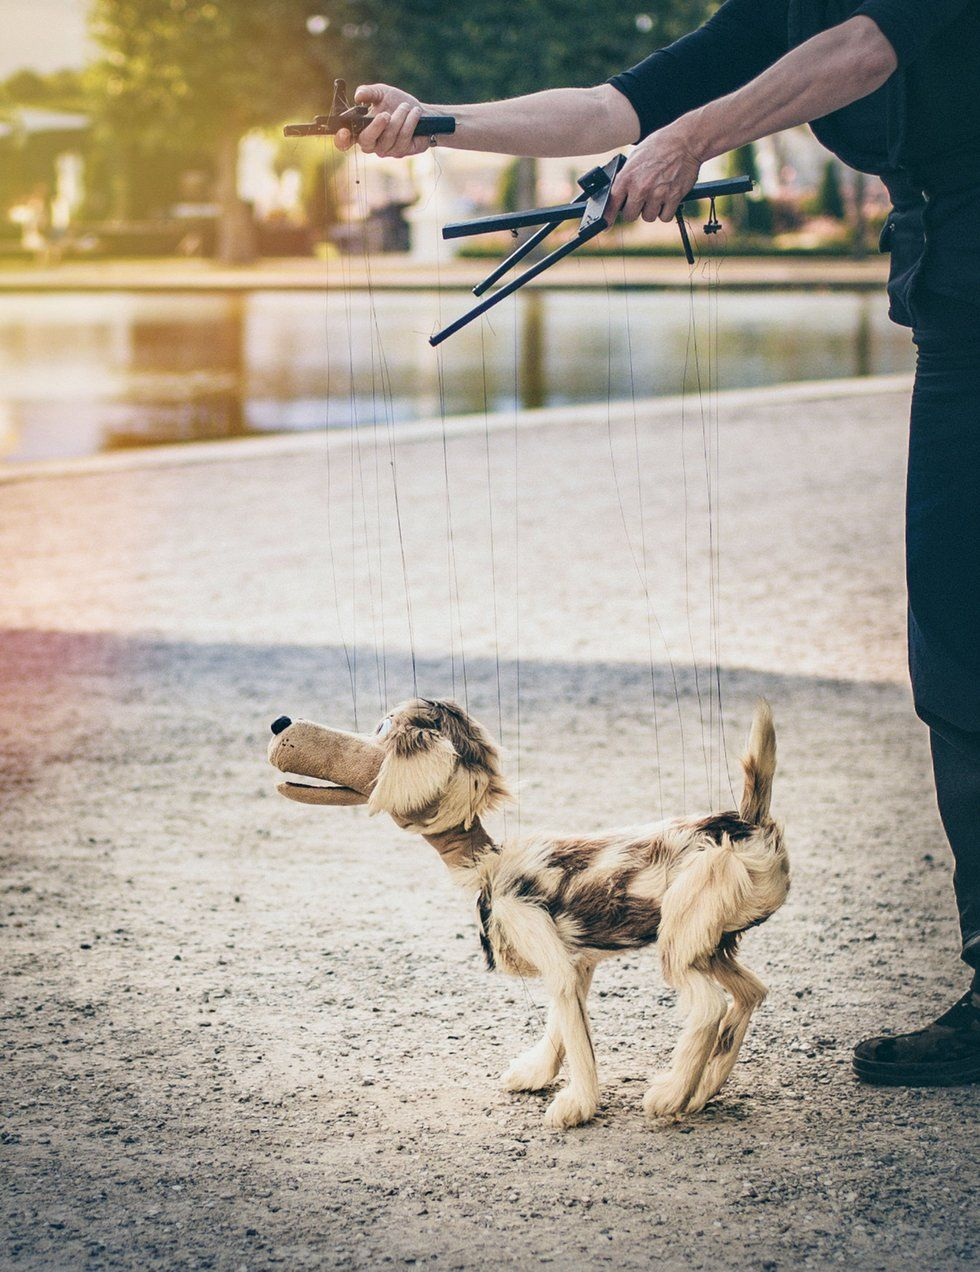 Dog puppet on strings